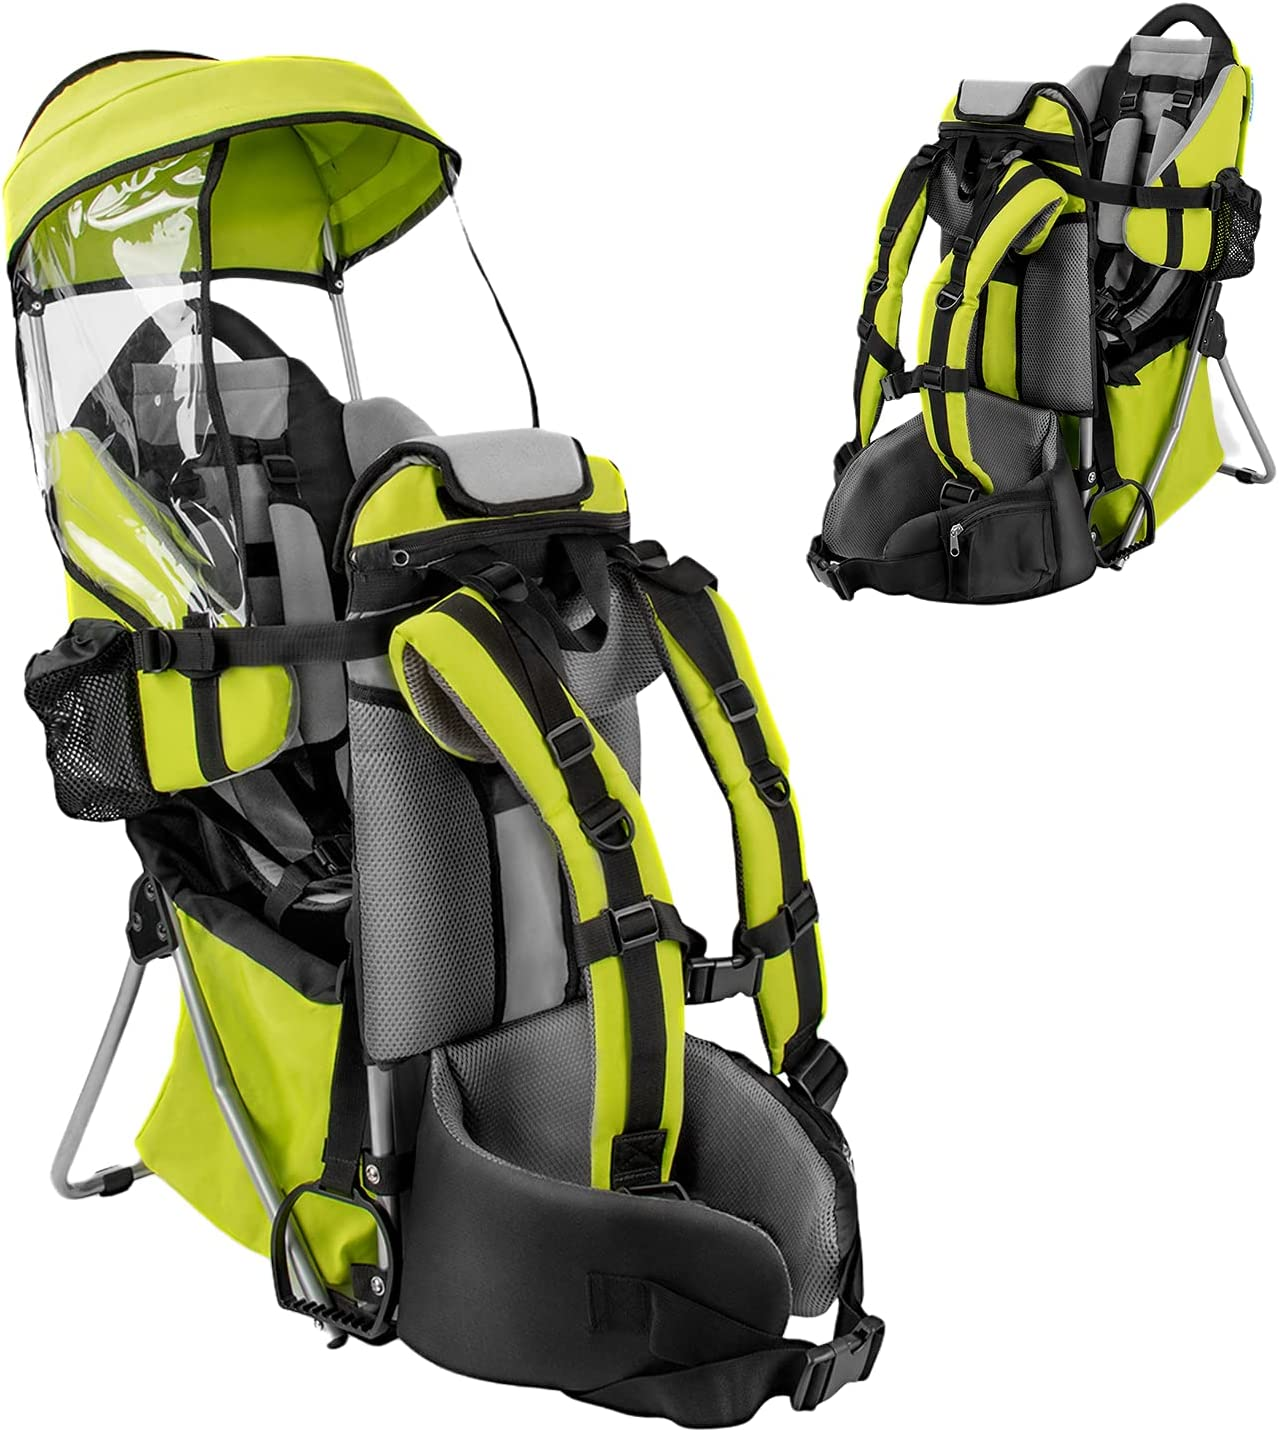 Besrey child carrier children back carriers child carriers for outdoor use Green